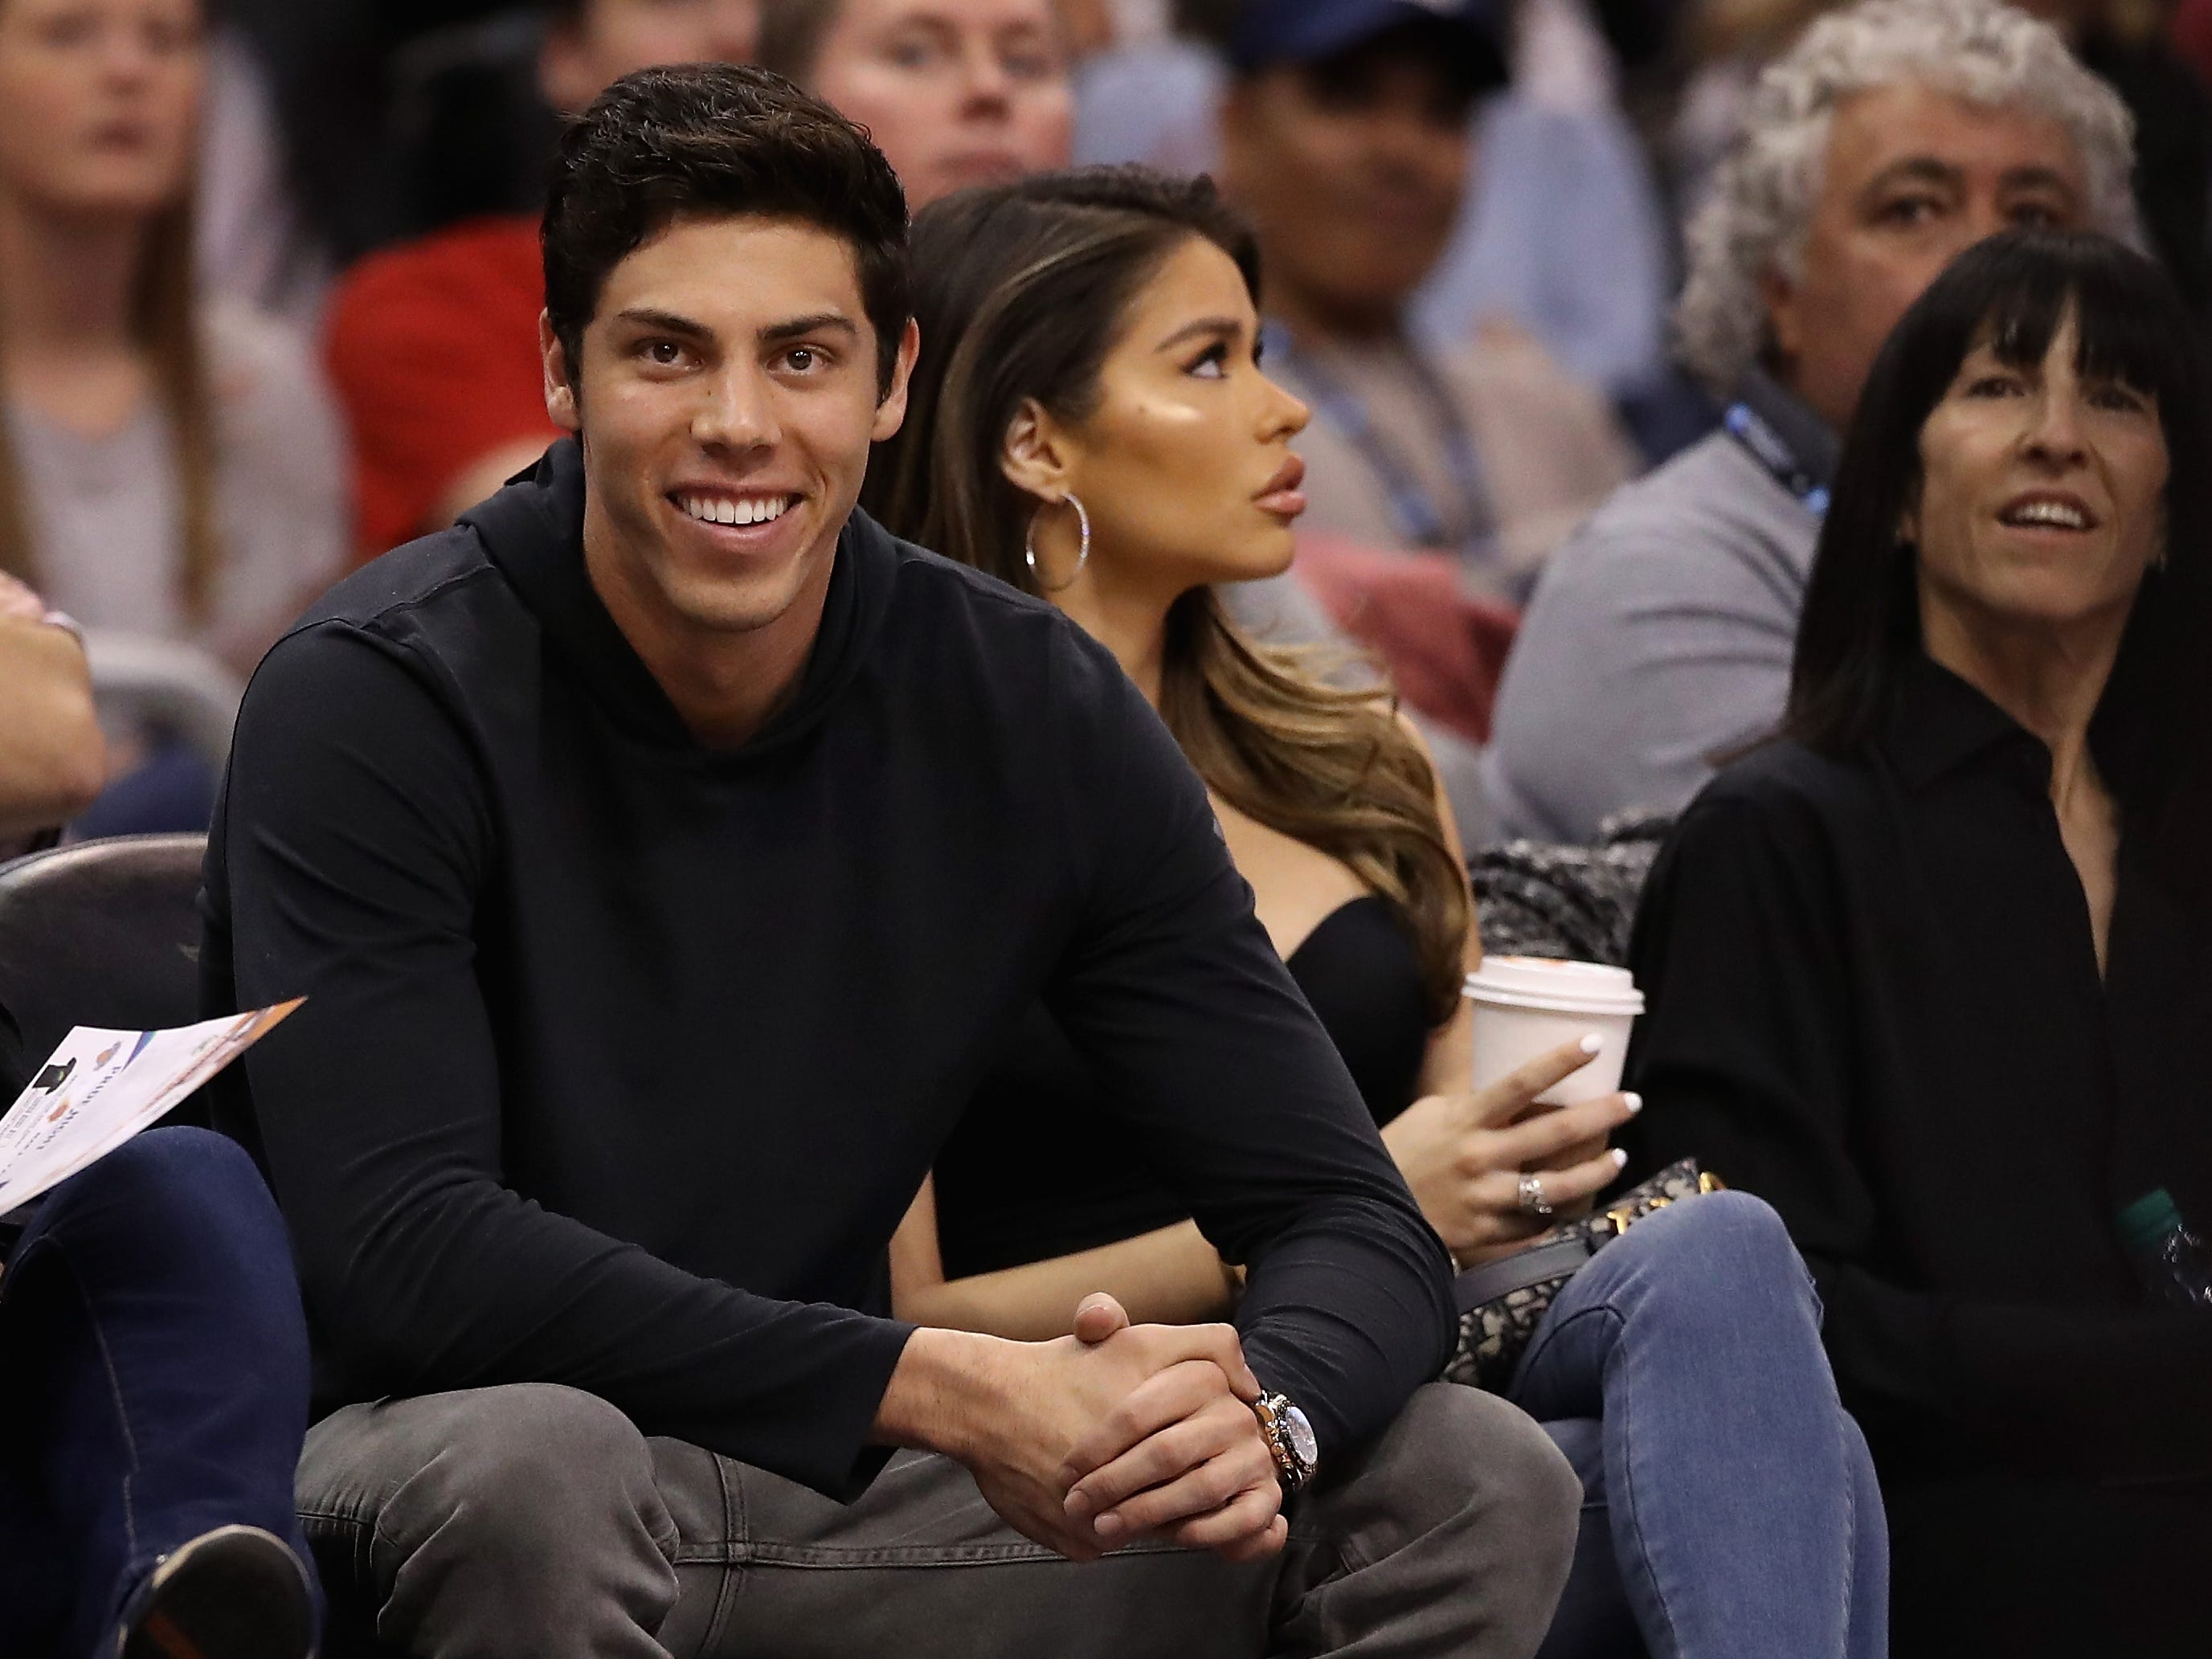 March 4: Christian Yelich of the Milwaukee Brewers attends the game between the Phoenix Suns and Milwaukee Bucks at Talking Stick Resort Arena.